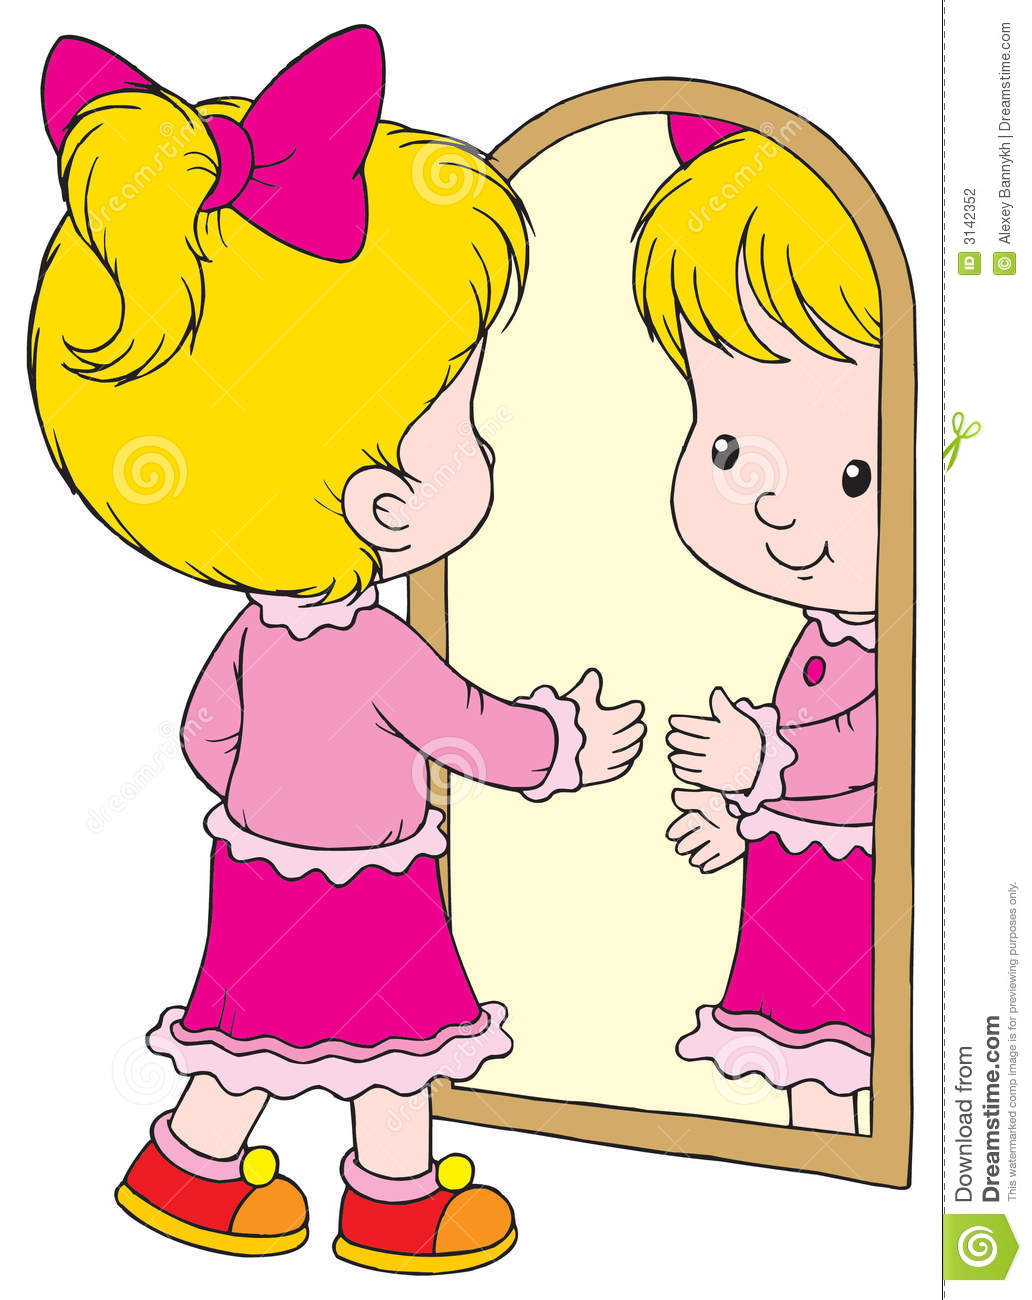 child looking in mirror clipart. royalty-free stock photo child looking in mirror clipart dreamstime.com